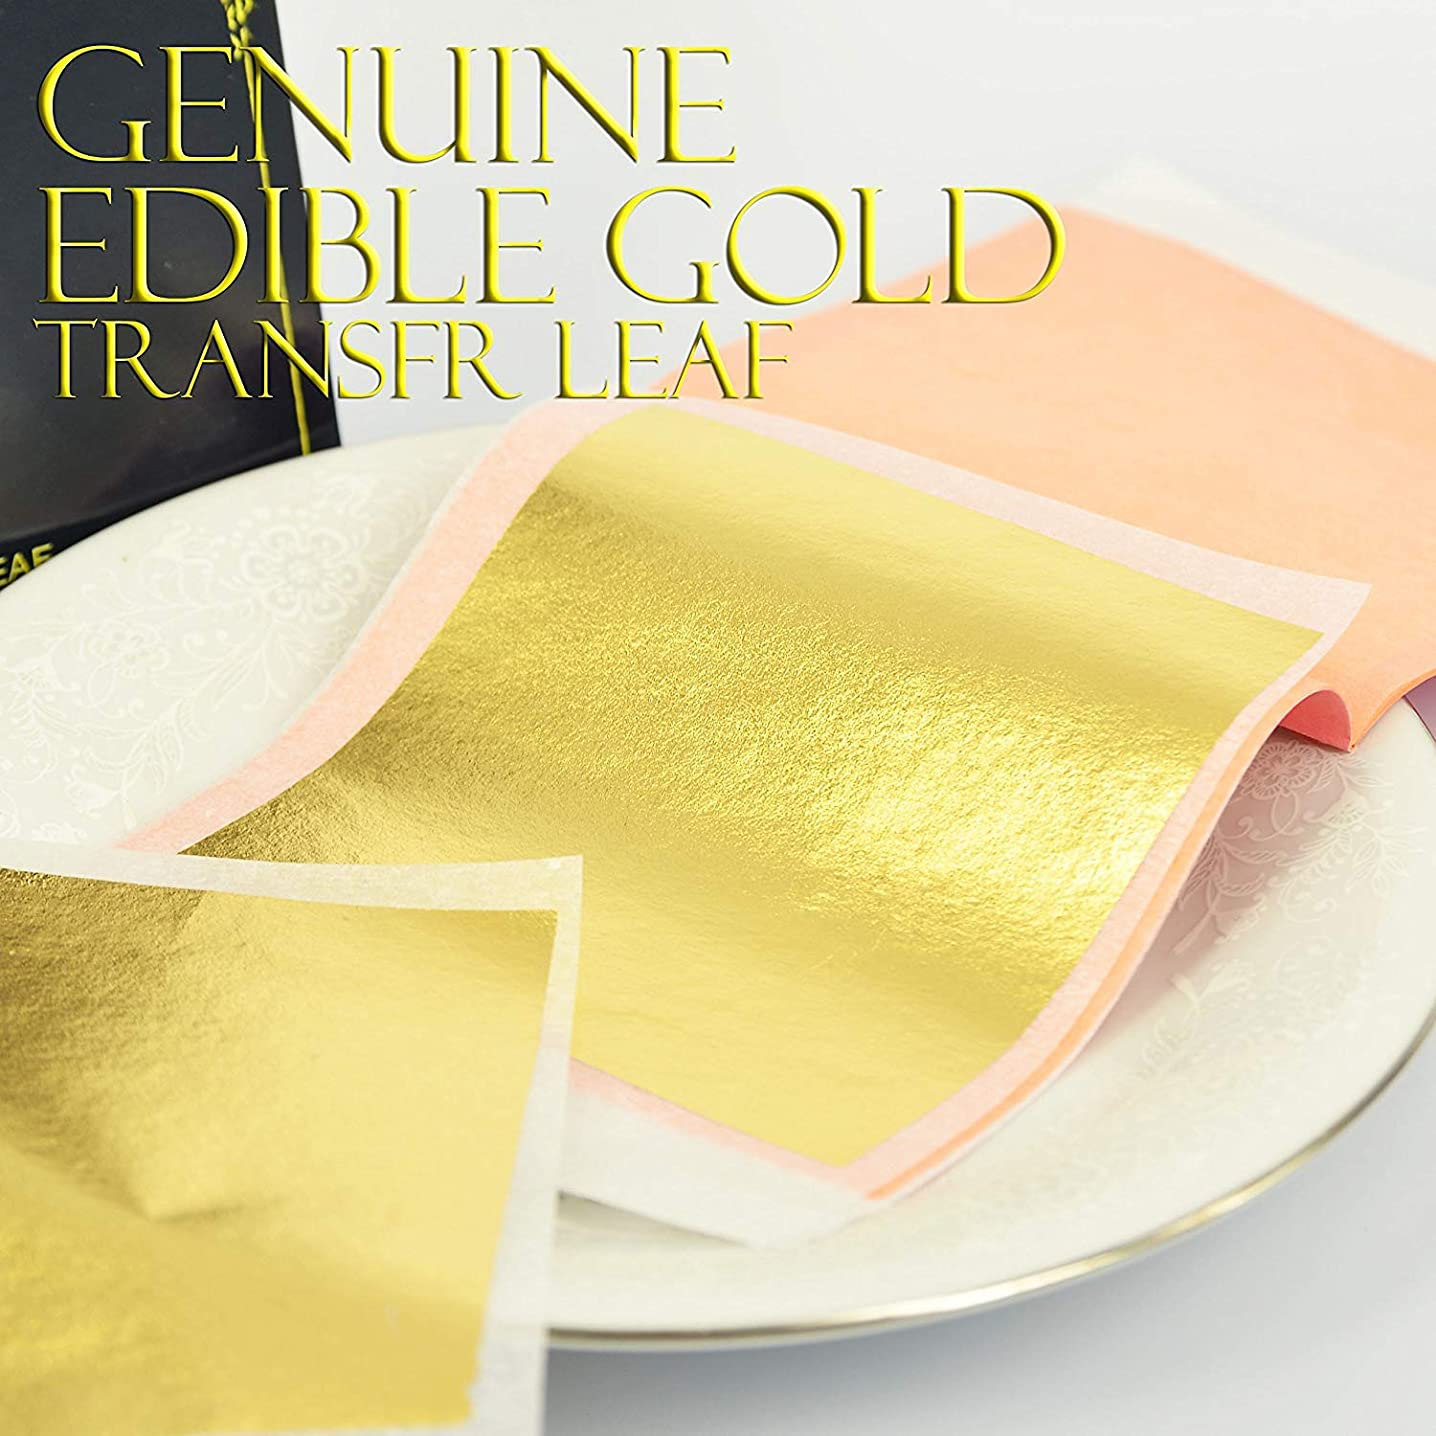 Edible Genuine Gold Leaf Sheets - by Barnabas Blattgold - 3.1 inches Booklet of 10 Sheets - Transfer Patent Leaf